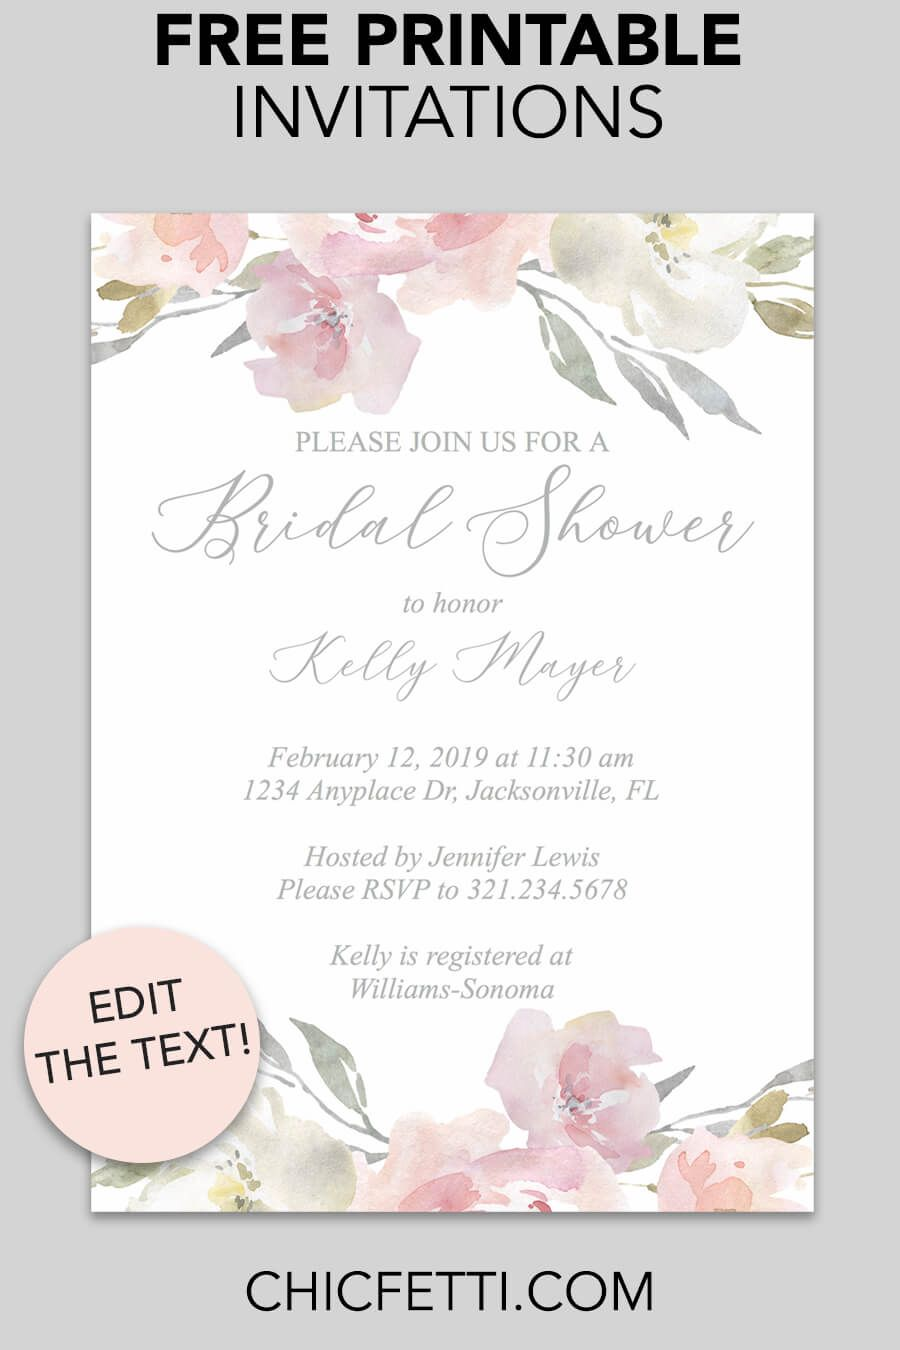 graphic about Free Printable Bridal Shower Invitation Templates known as Pin upon Invites - Free of charge Printable Invitation Templates